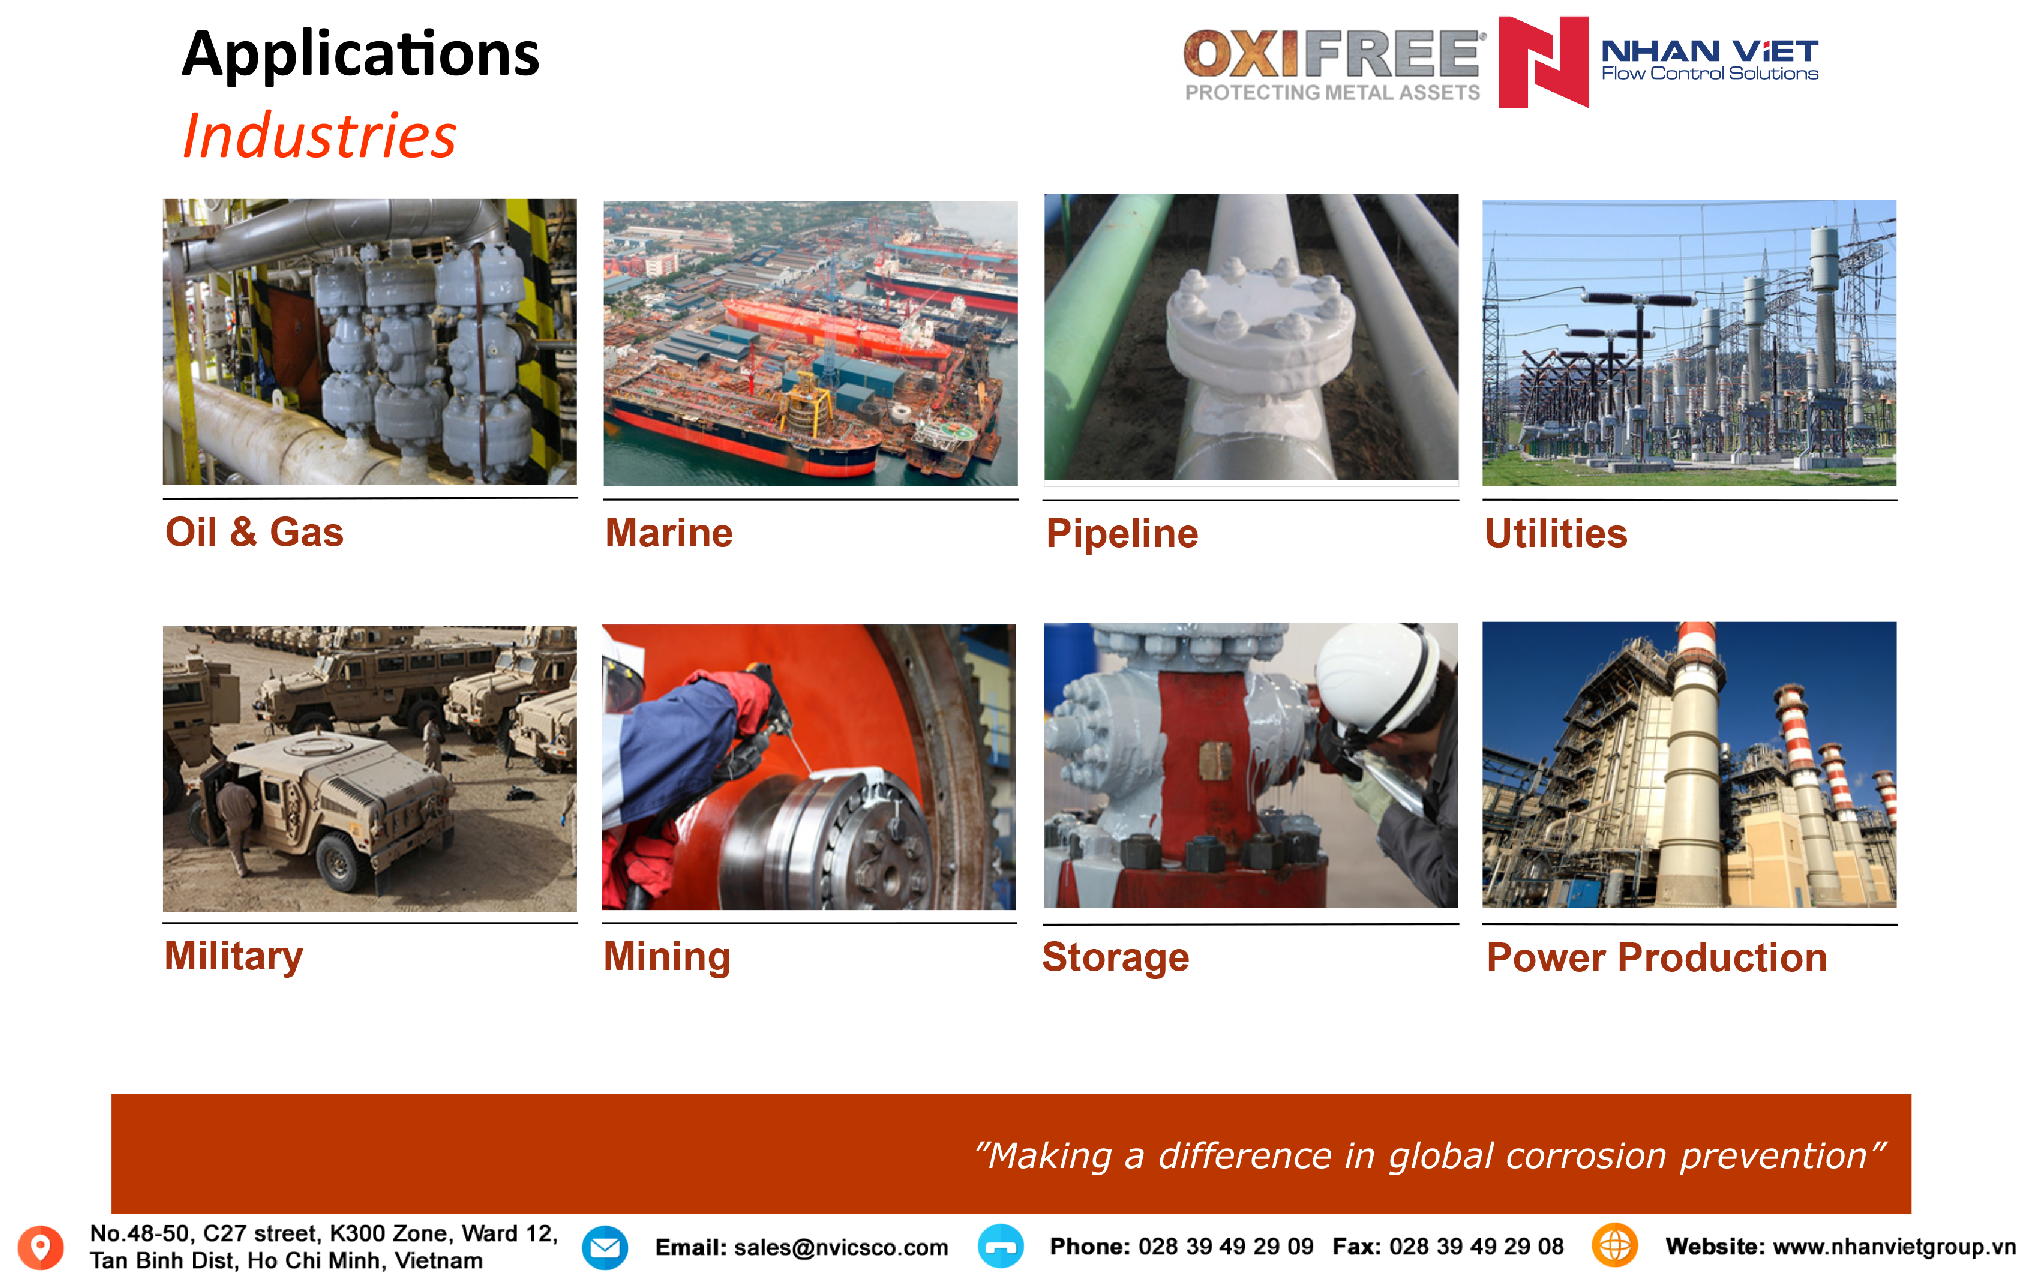 Oxifree-Nhan-Viet-Applications